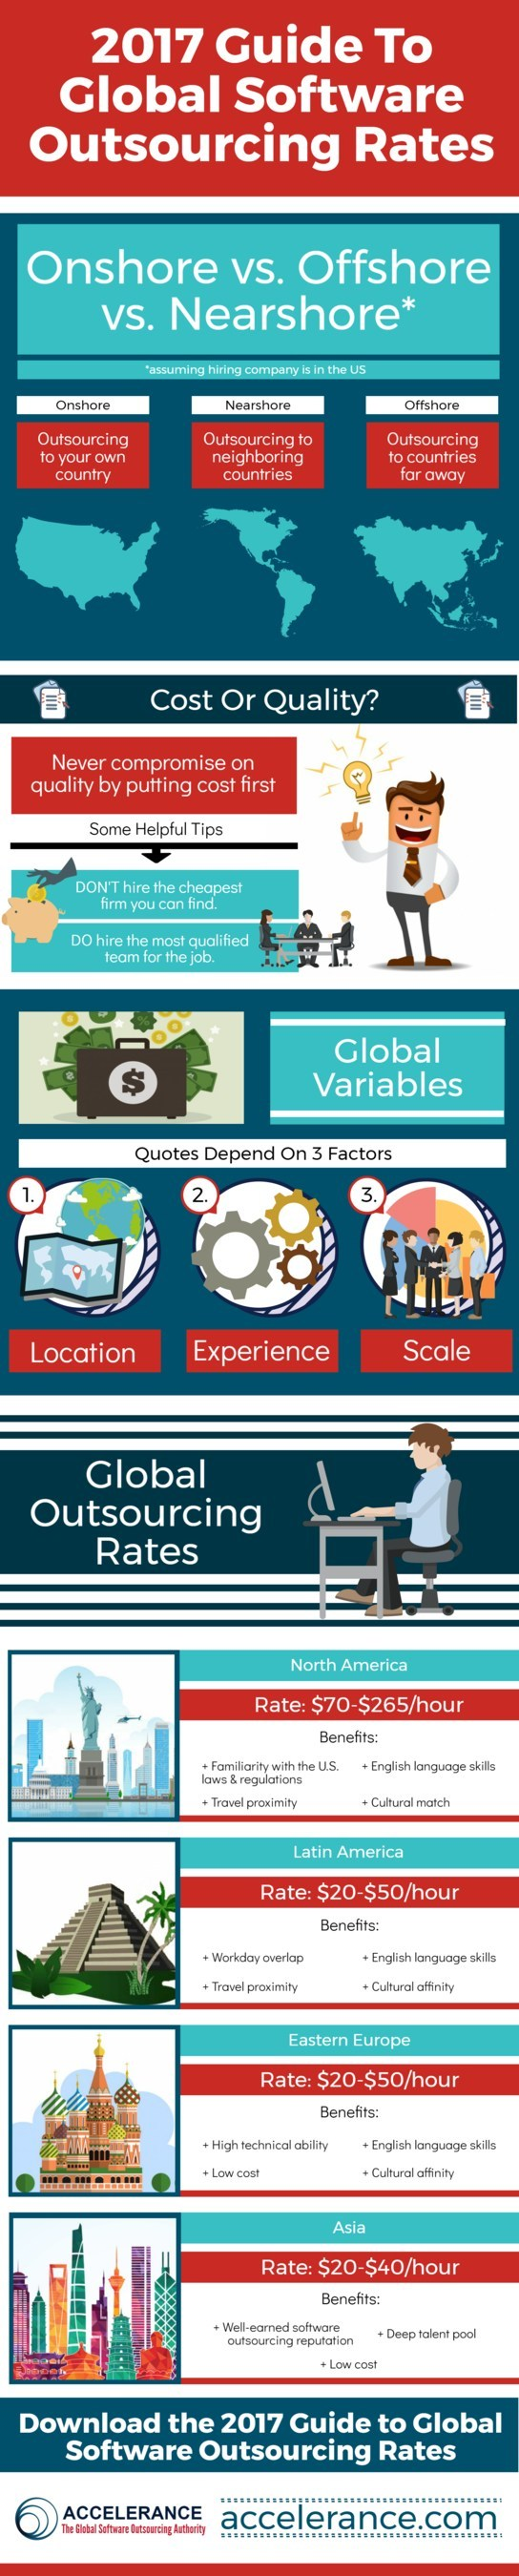 "Infographic highlights Accelerance's new report, ""2017 Guide to Global Software Outsourcing Rates."" The infographic and complimentary guide present the competitive global rates an enterprise or chief technology officer (CTO) can expect to pay when outsourcing to various regions."